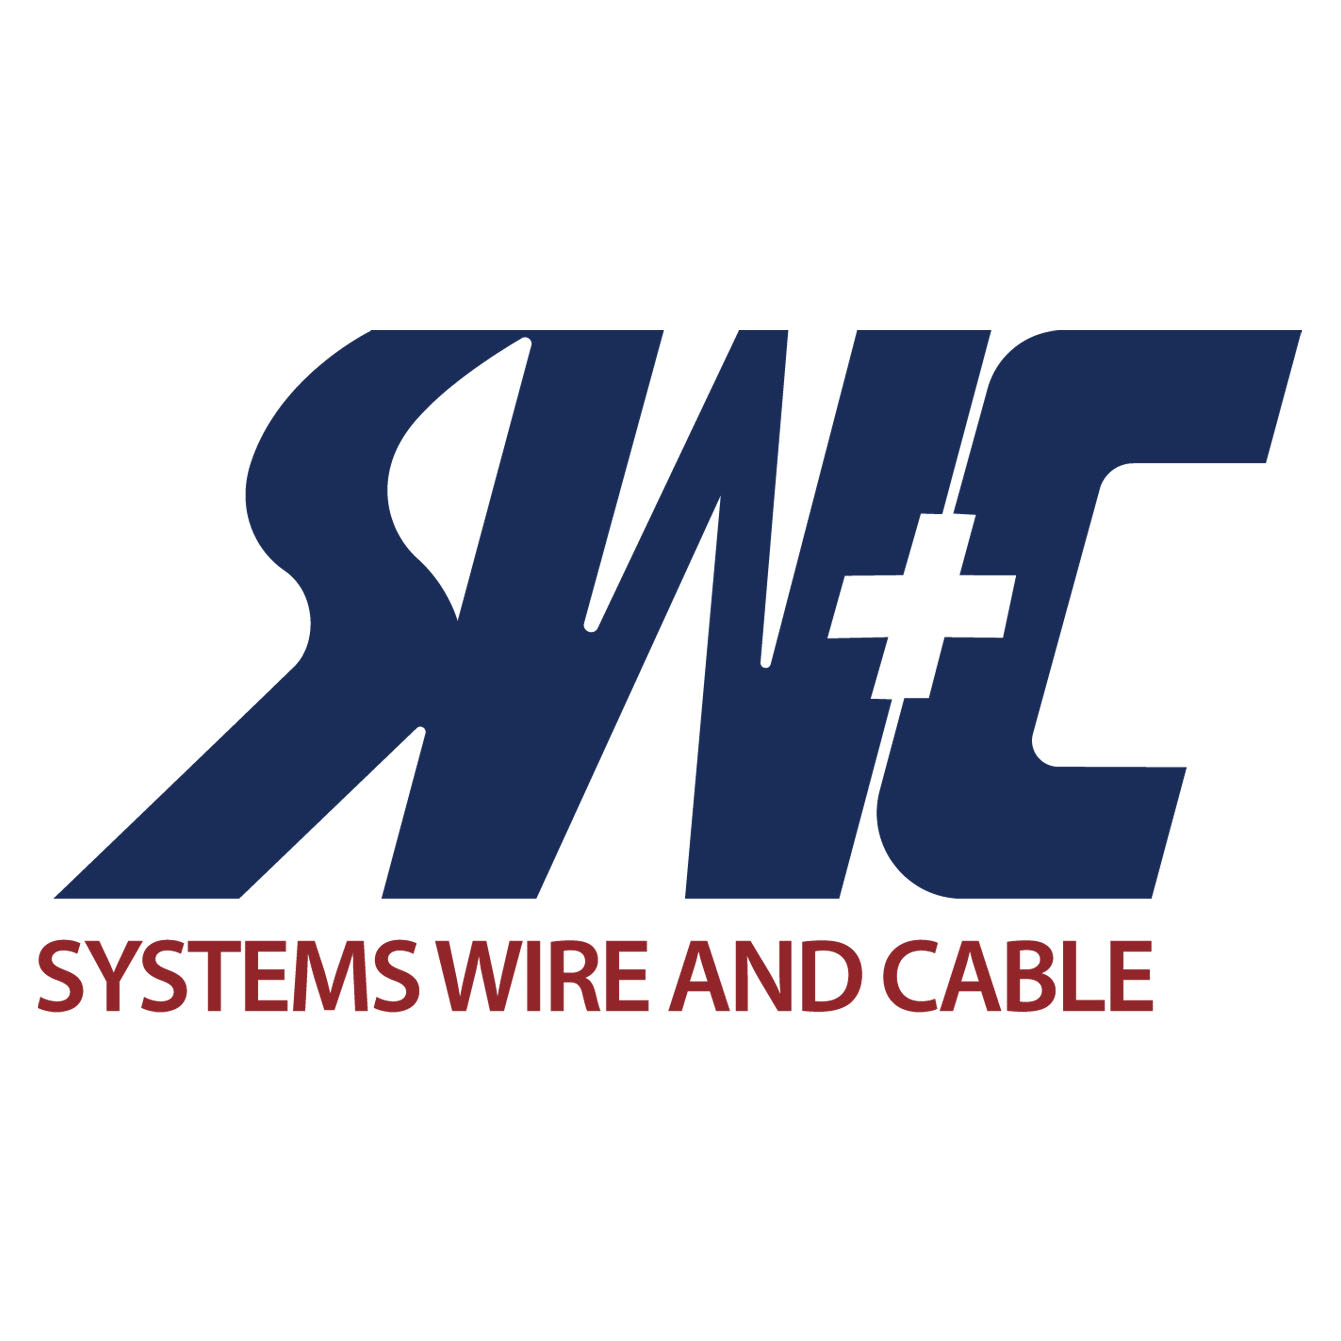 Systems Wire and Cable - Los Angeles, CA